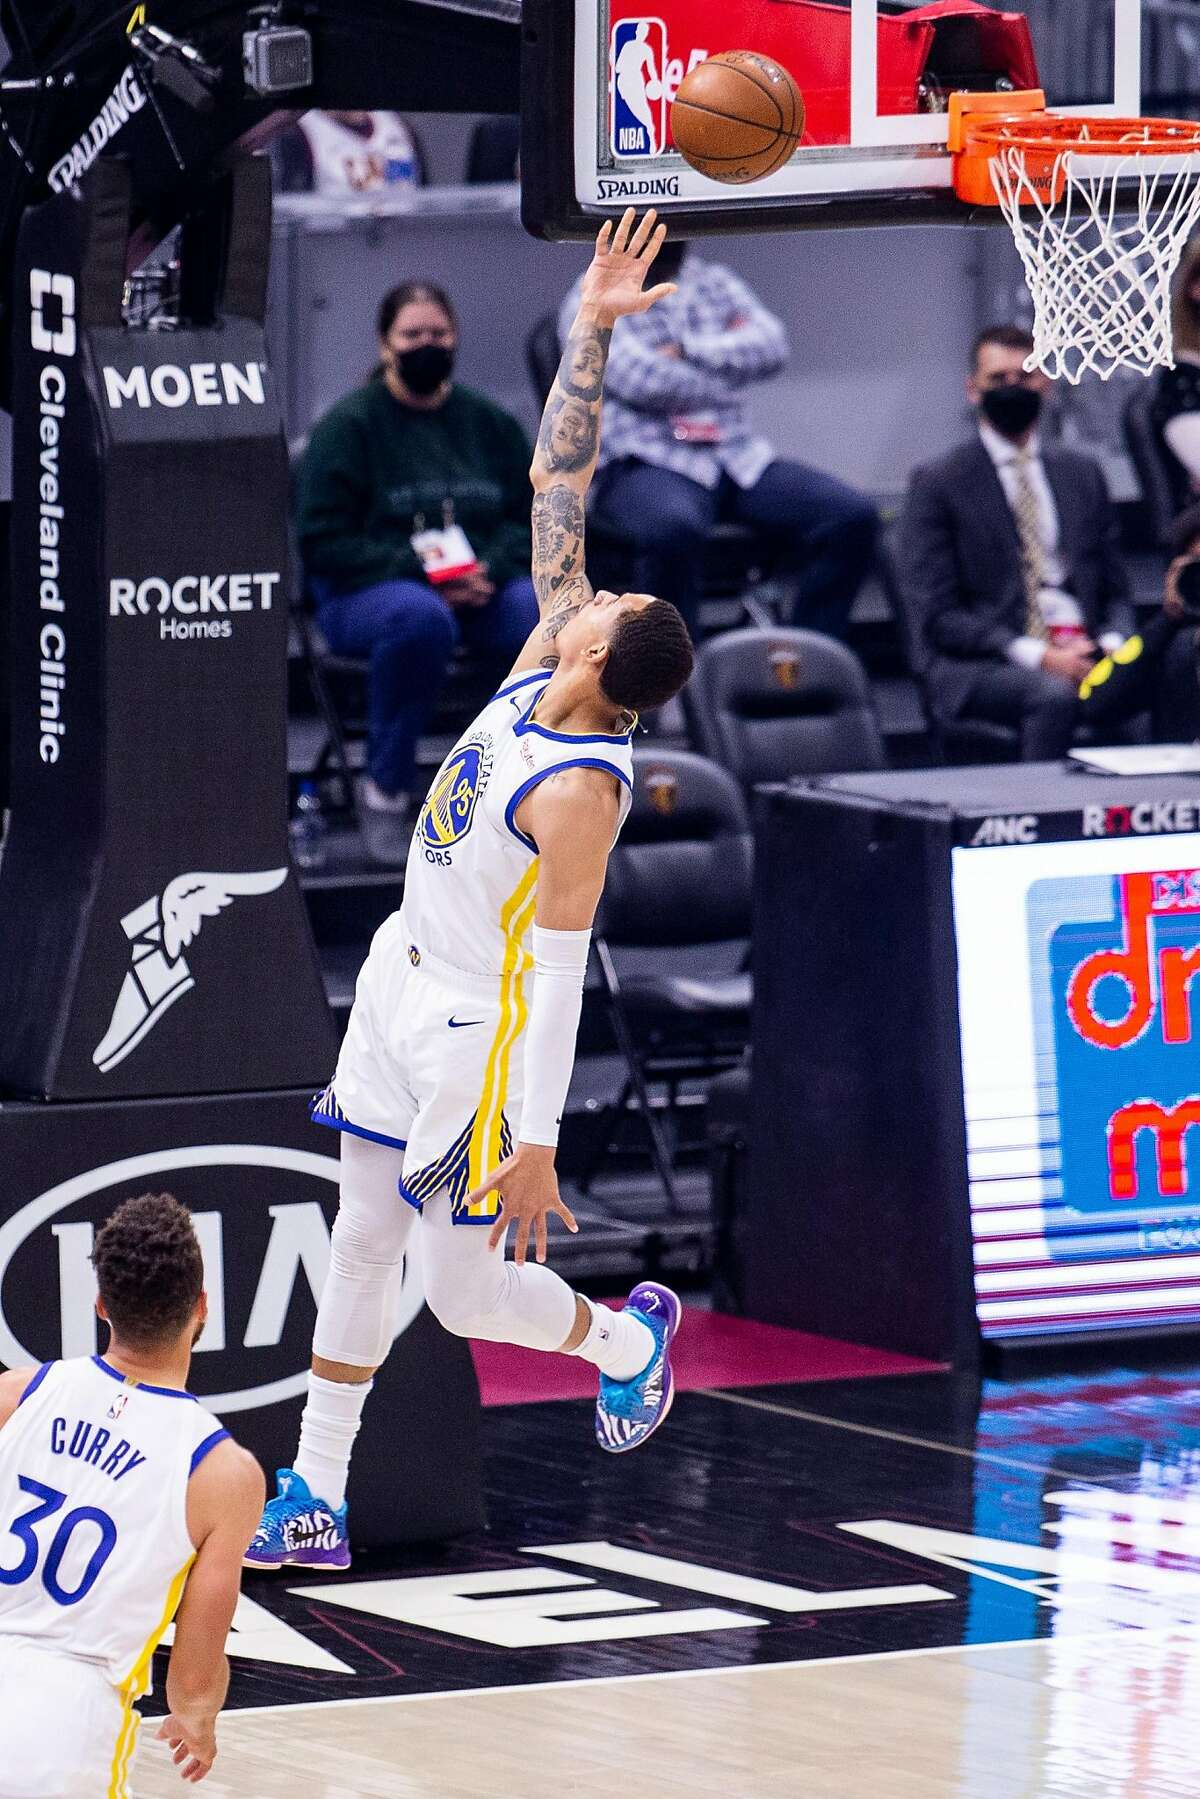 CLEVELAND, OH - APRIL 15: Juan Toscano-Anderson #95 of the Golden State Warriors scores during the first quarter against the Cleveland Cavaliers at Rocket Mortgage Fieldhouse on April 15, 2021 in Cleveland, Ohio. NOTE TO USER: User expressly acknowledges and agrees that, by downloading and or using this photograph, User is consenting to the terms and conditions of the Getty Images License Agreement. (Photo by Lauren Bacho/Getty Images)